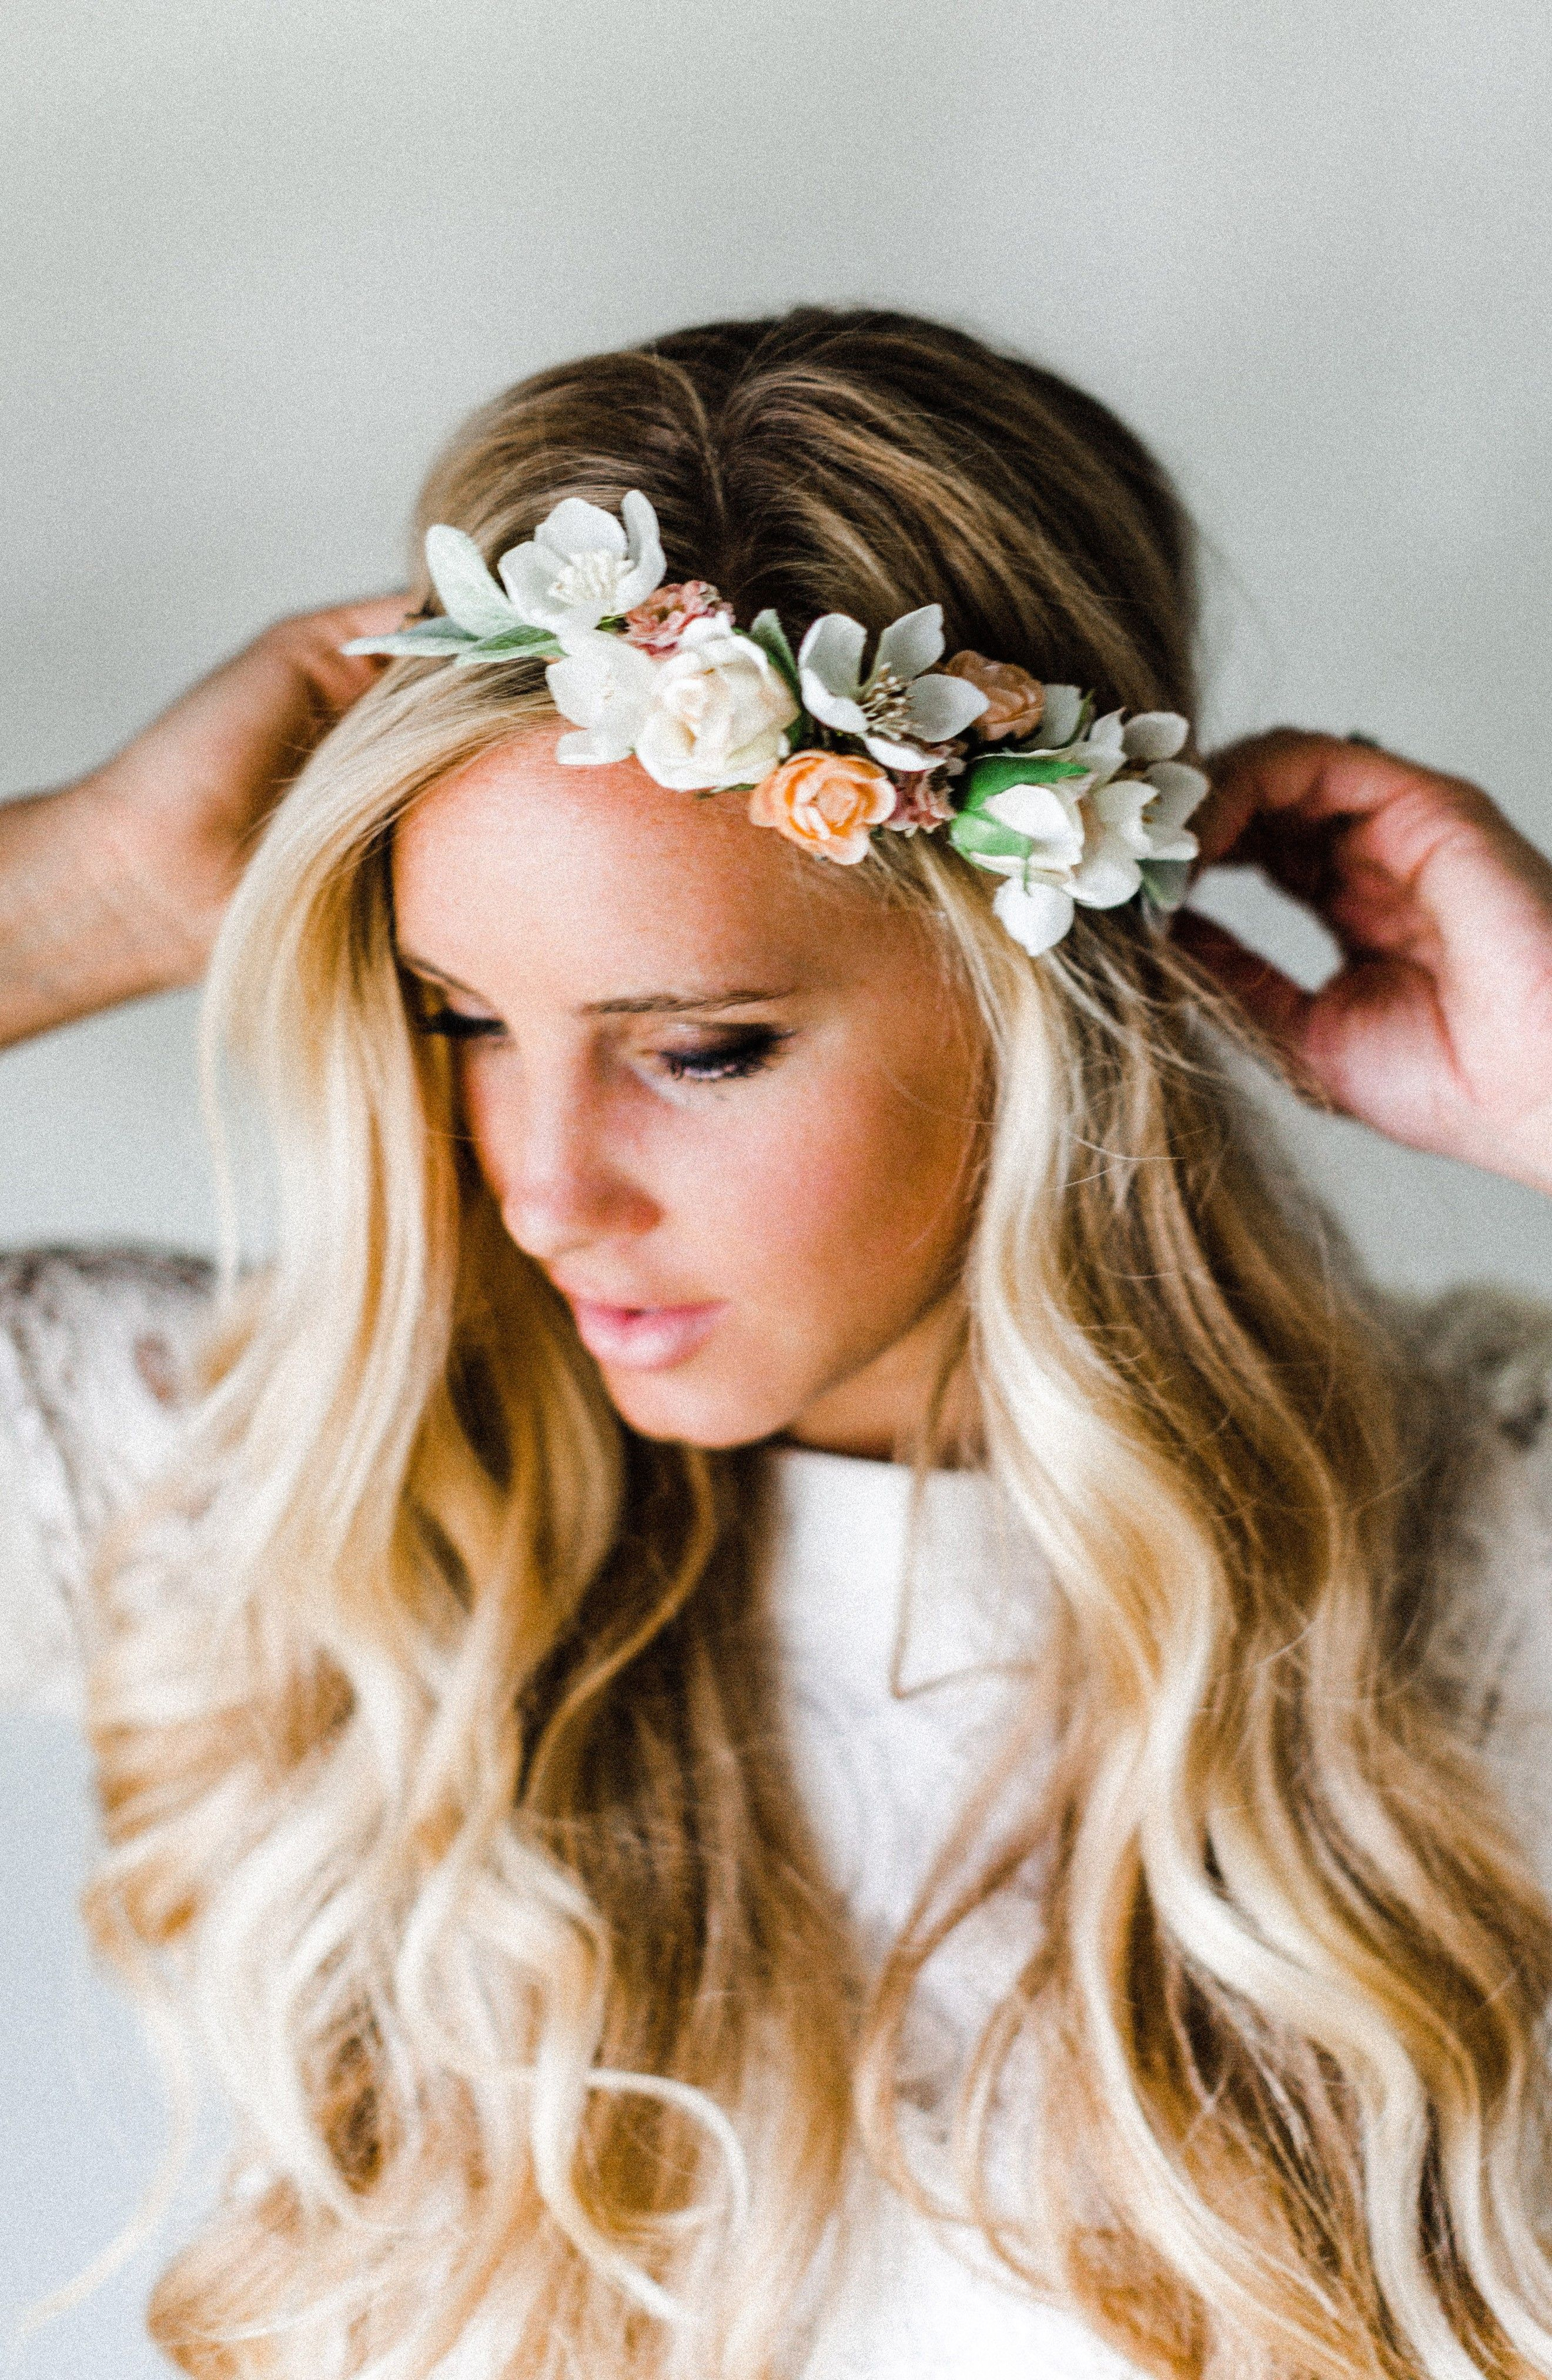 Neutral blooms silk flower crown affairs to remember pinterest pretty flower crowns crafted with lush silk flowers and lambs ear leaves this boho inspired flower crown will look stunning all day long and can be worn izmirmasajfo